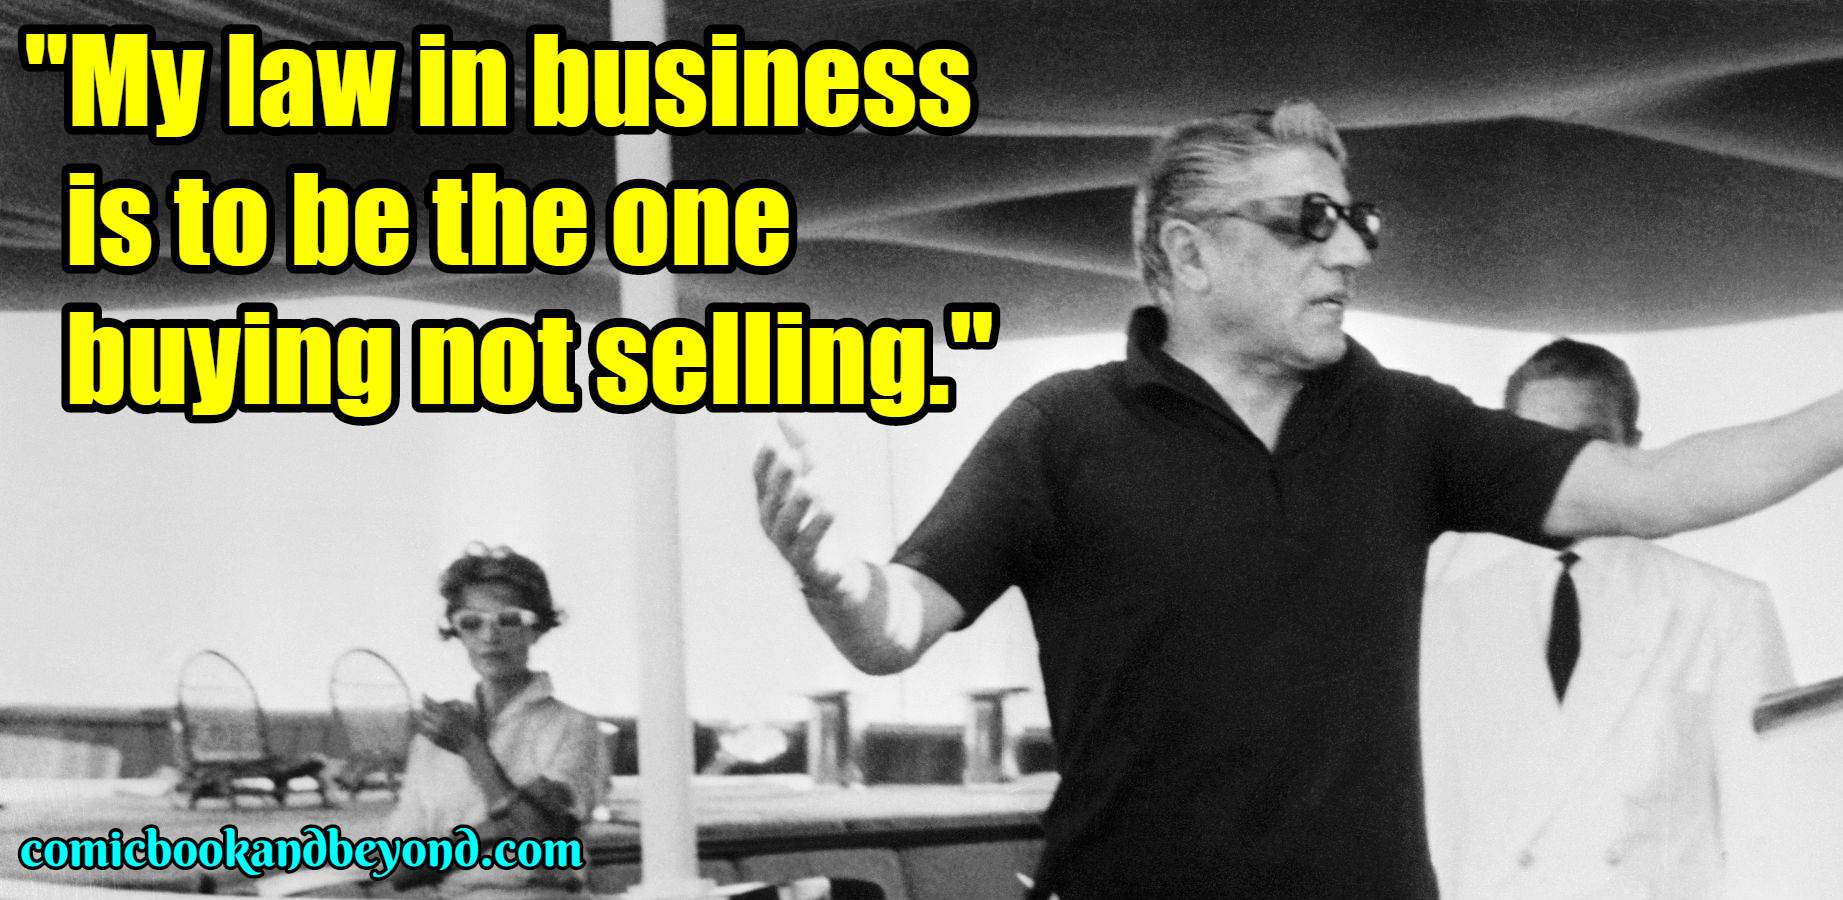 100+ Aristotle Onassis Quotes that will make you the best Business